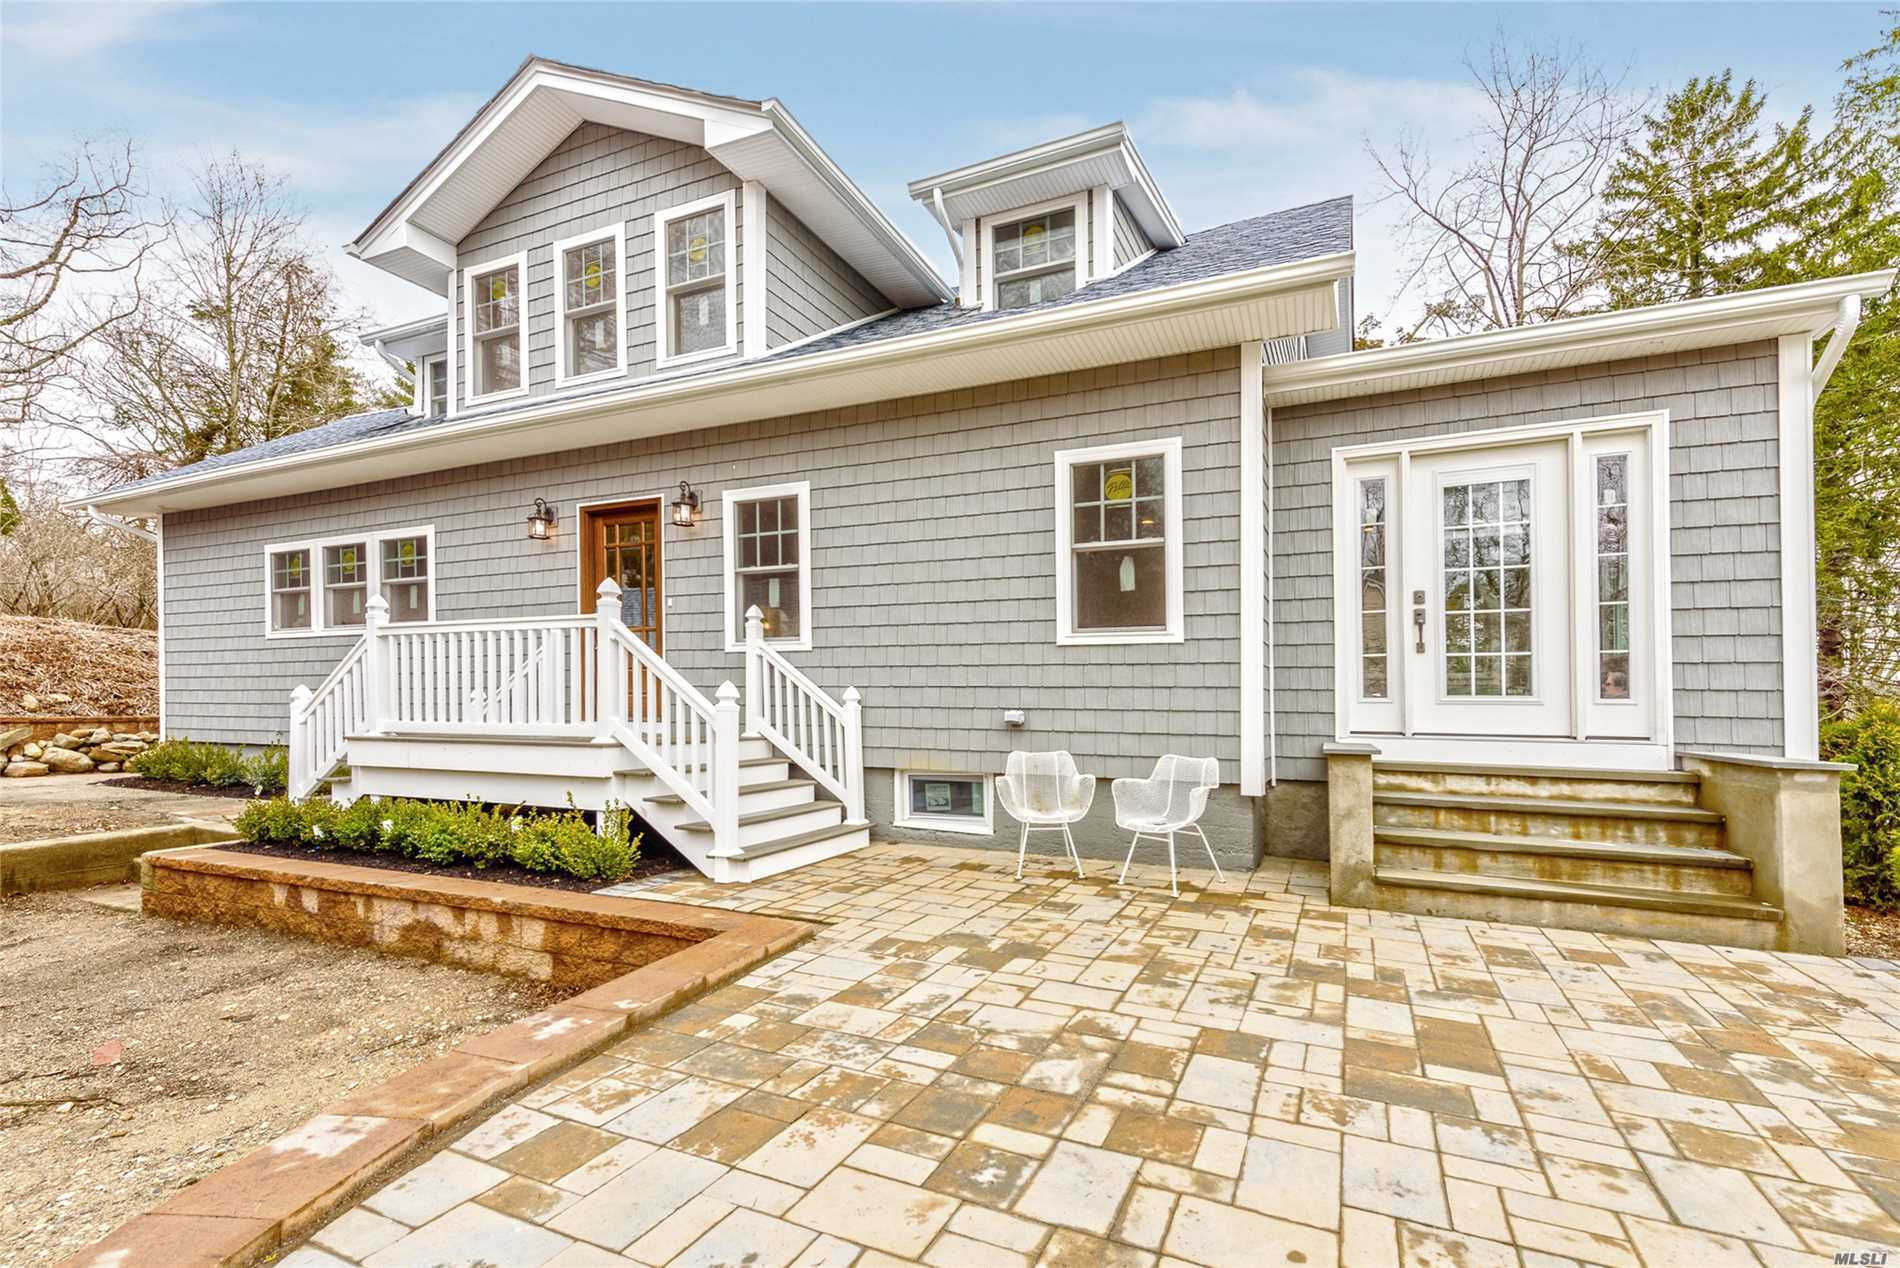 Totally Renovated Cape, upgraded to top shelf design and appliances, Interior Stunning. NEW everything, open floorplan, Large full basement, wine celler. Master bedroom with Bath, WIC, 2 bedrooms with Bath. Winter waterviews, .75 acre. Harborfields Schools . Motivated seller...